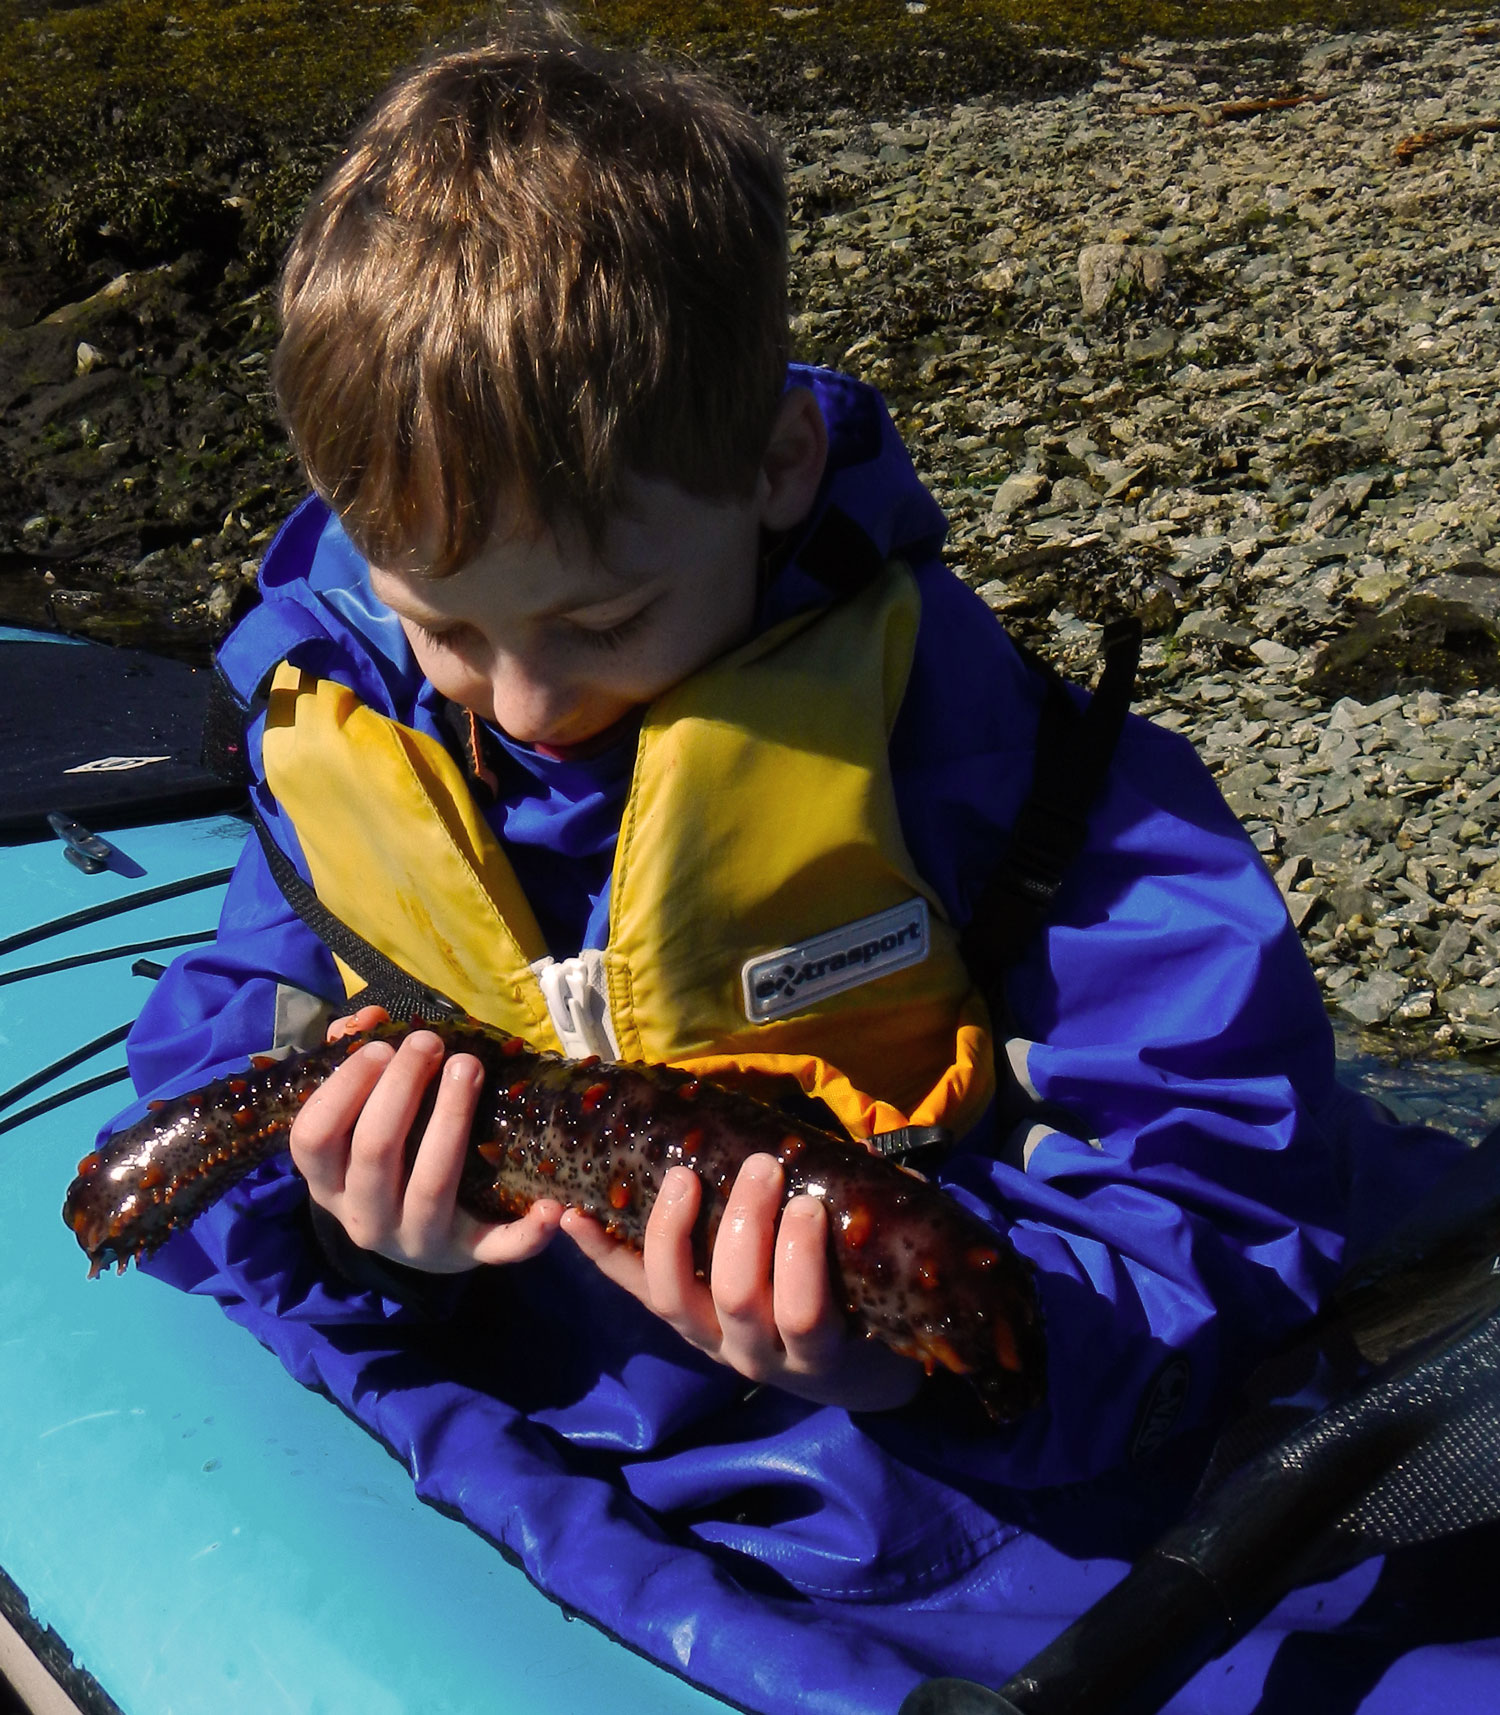 Declan examines a sea cucumber in Snow's Cove on the Ketchikan Kayak tour.